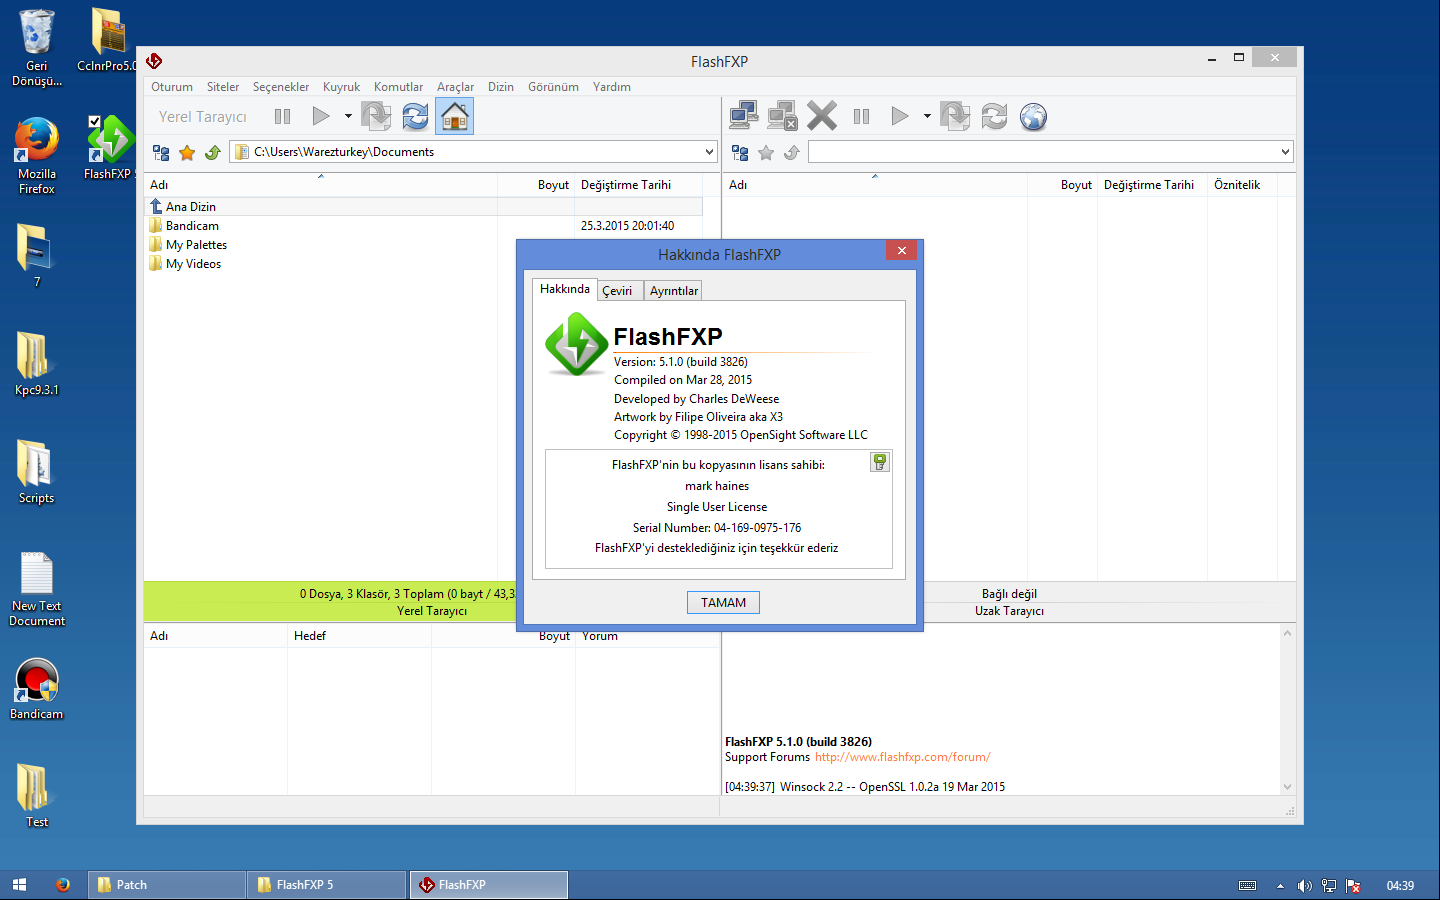 FlashFXP 5.4.0 Build 3966 Türkçe + Portable